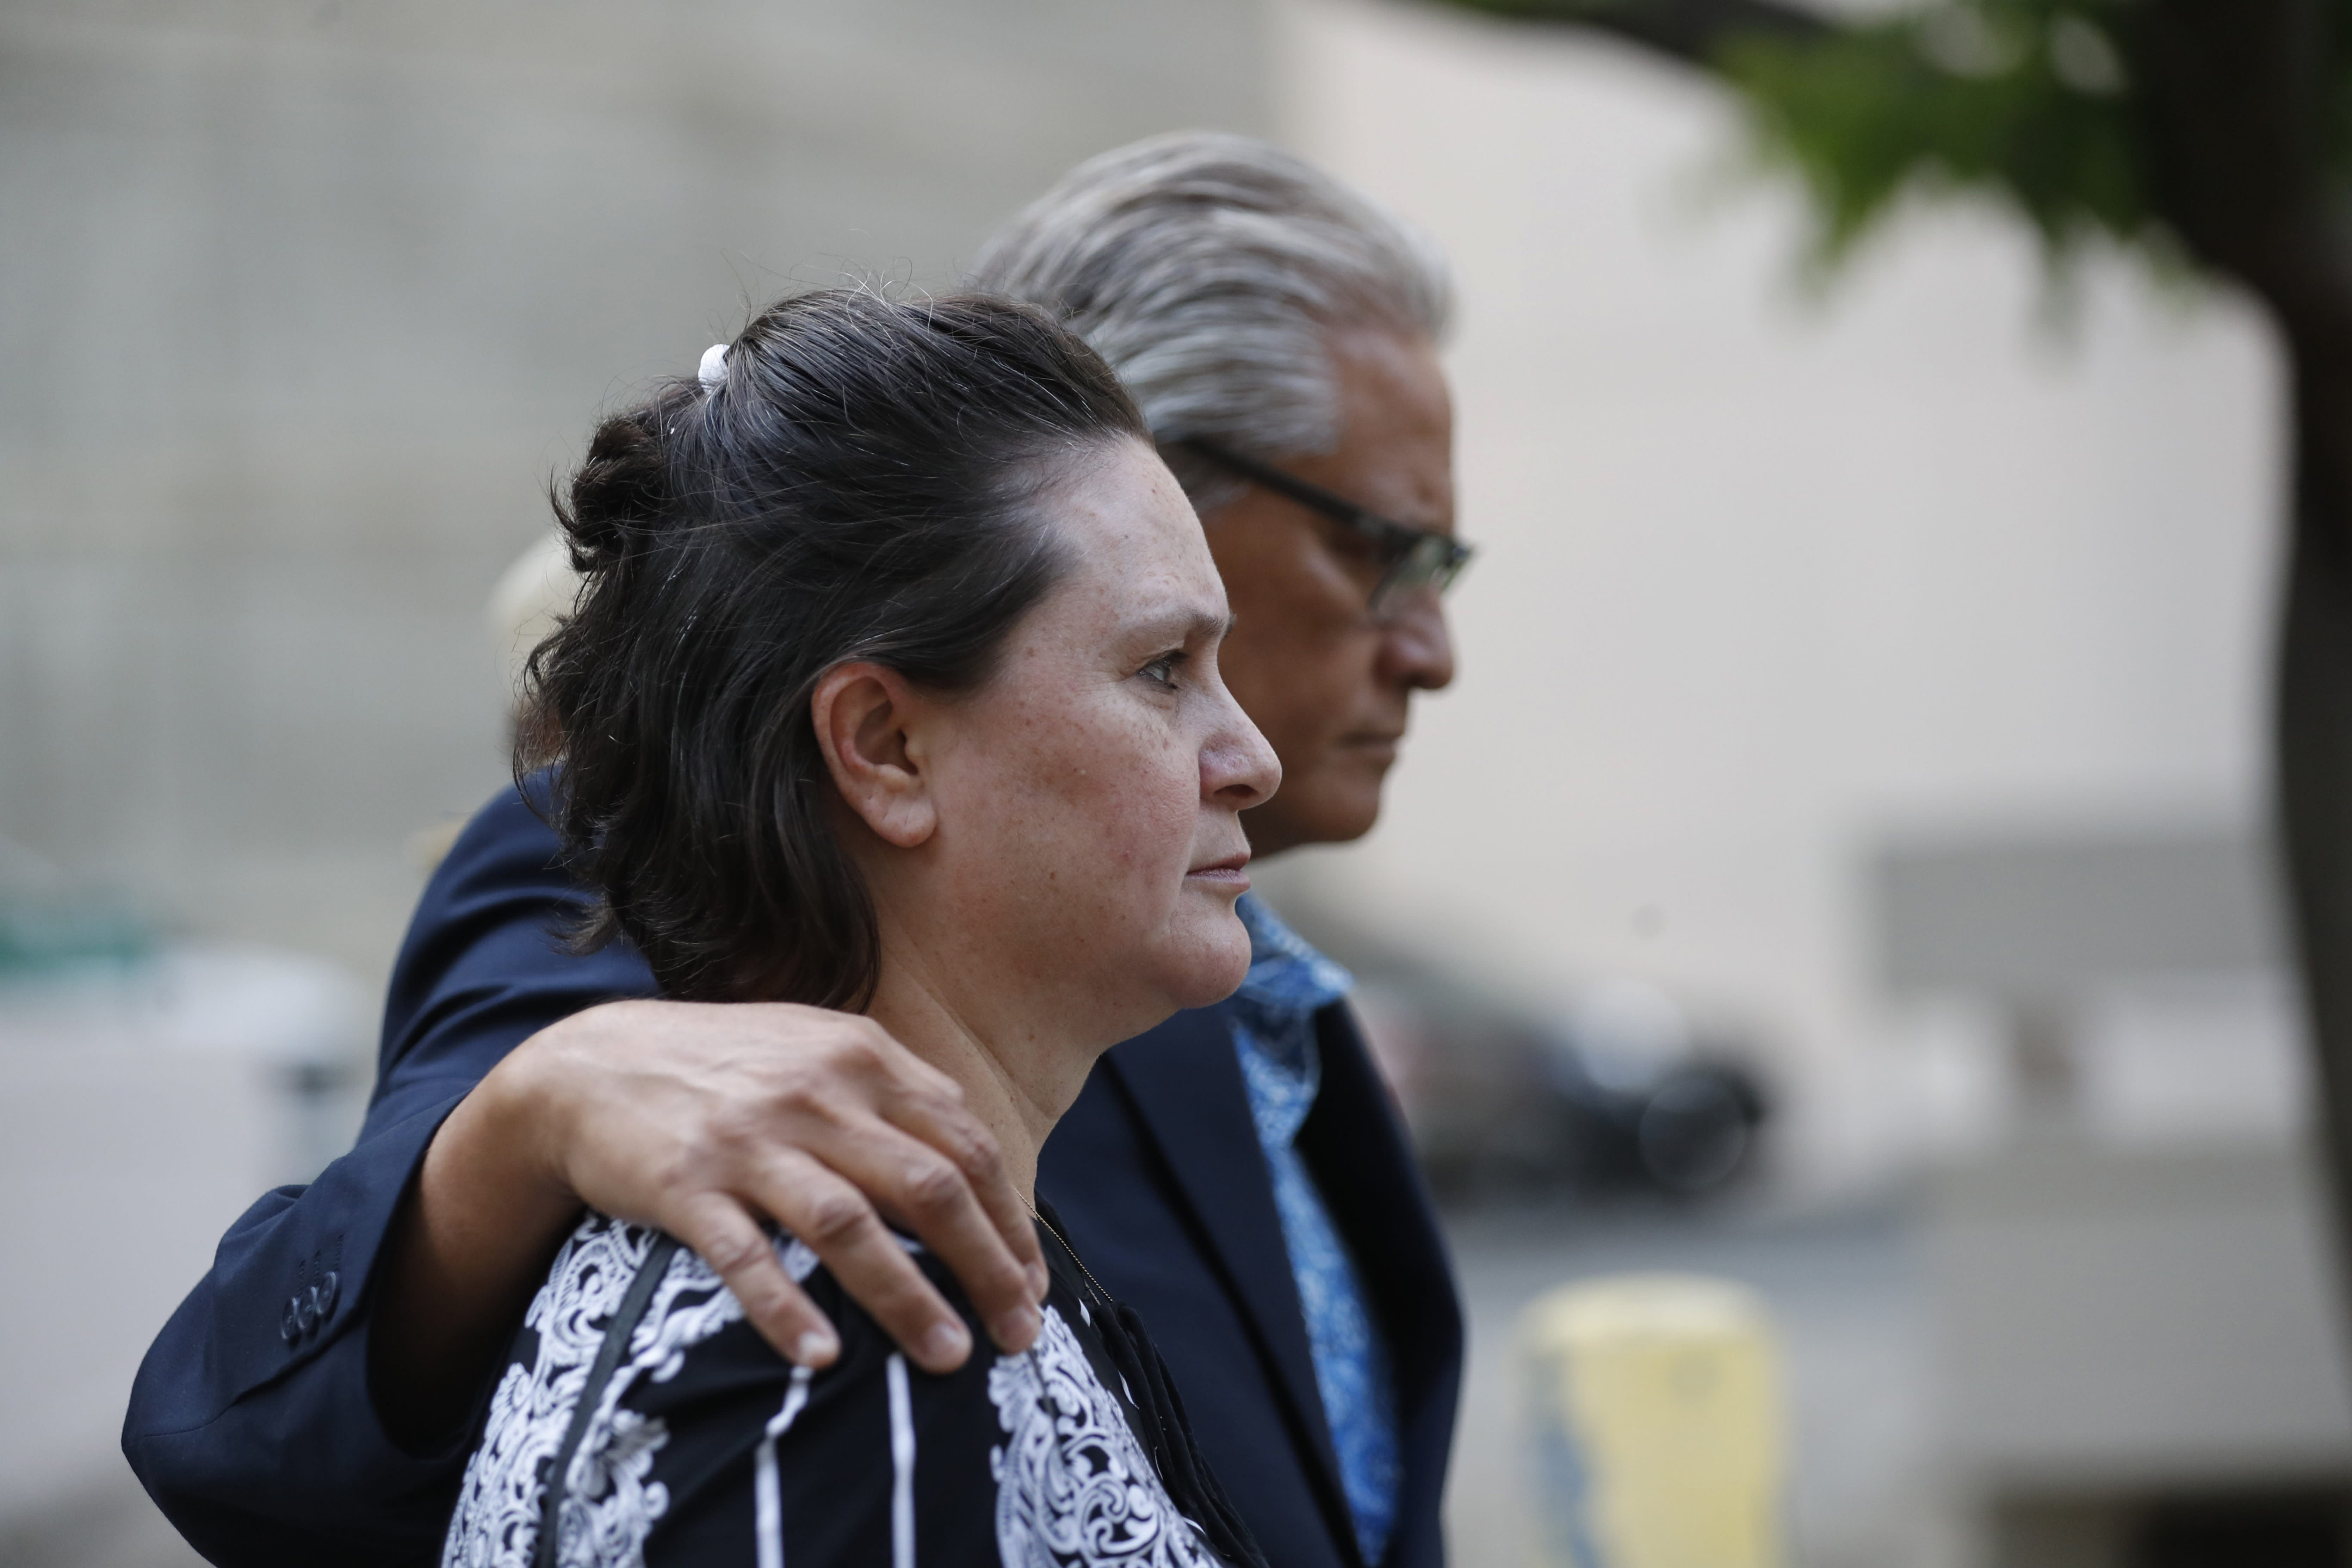 Former deputy prosecutor Katherine Kealoha, left, and husband, former Honolulu police chief Louis Kealoha, walk toward Queen Street after the verdict in their corruption case at federal court Thursday, June 27, 2019, in Honolulu. A jury has found the Kealohas guilty in a plot to frame a relative to silence him from revealing fraud that financed their lavish lifestyle, a case that shook the top levels of law enforcement. The jury found both Kealohas guilty of conspiracy. (Cindy Ellen Russell/Honolulu Star-Advertiser via AP)